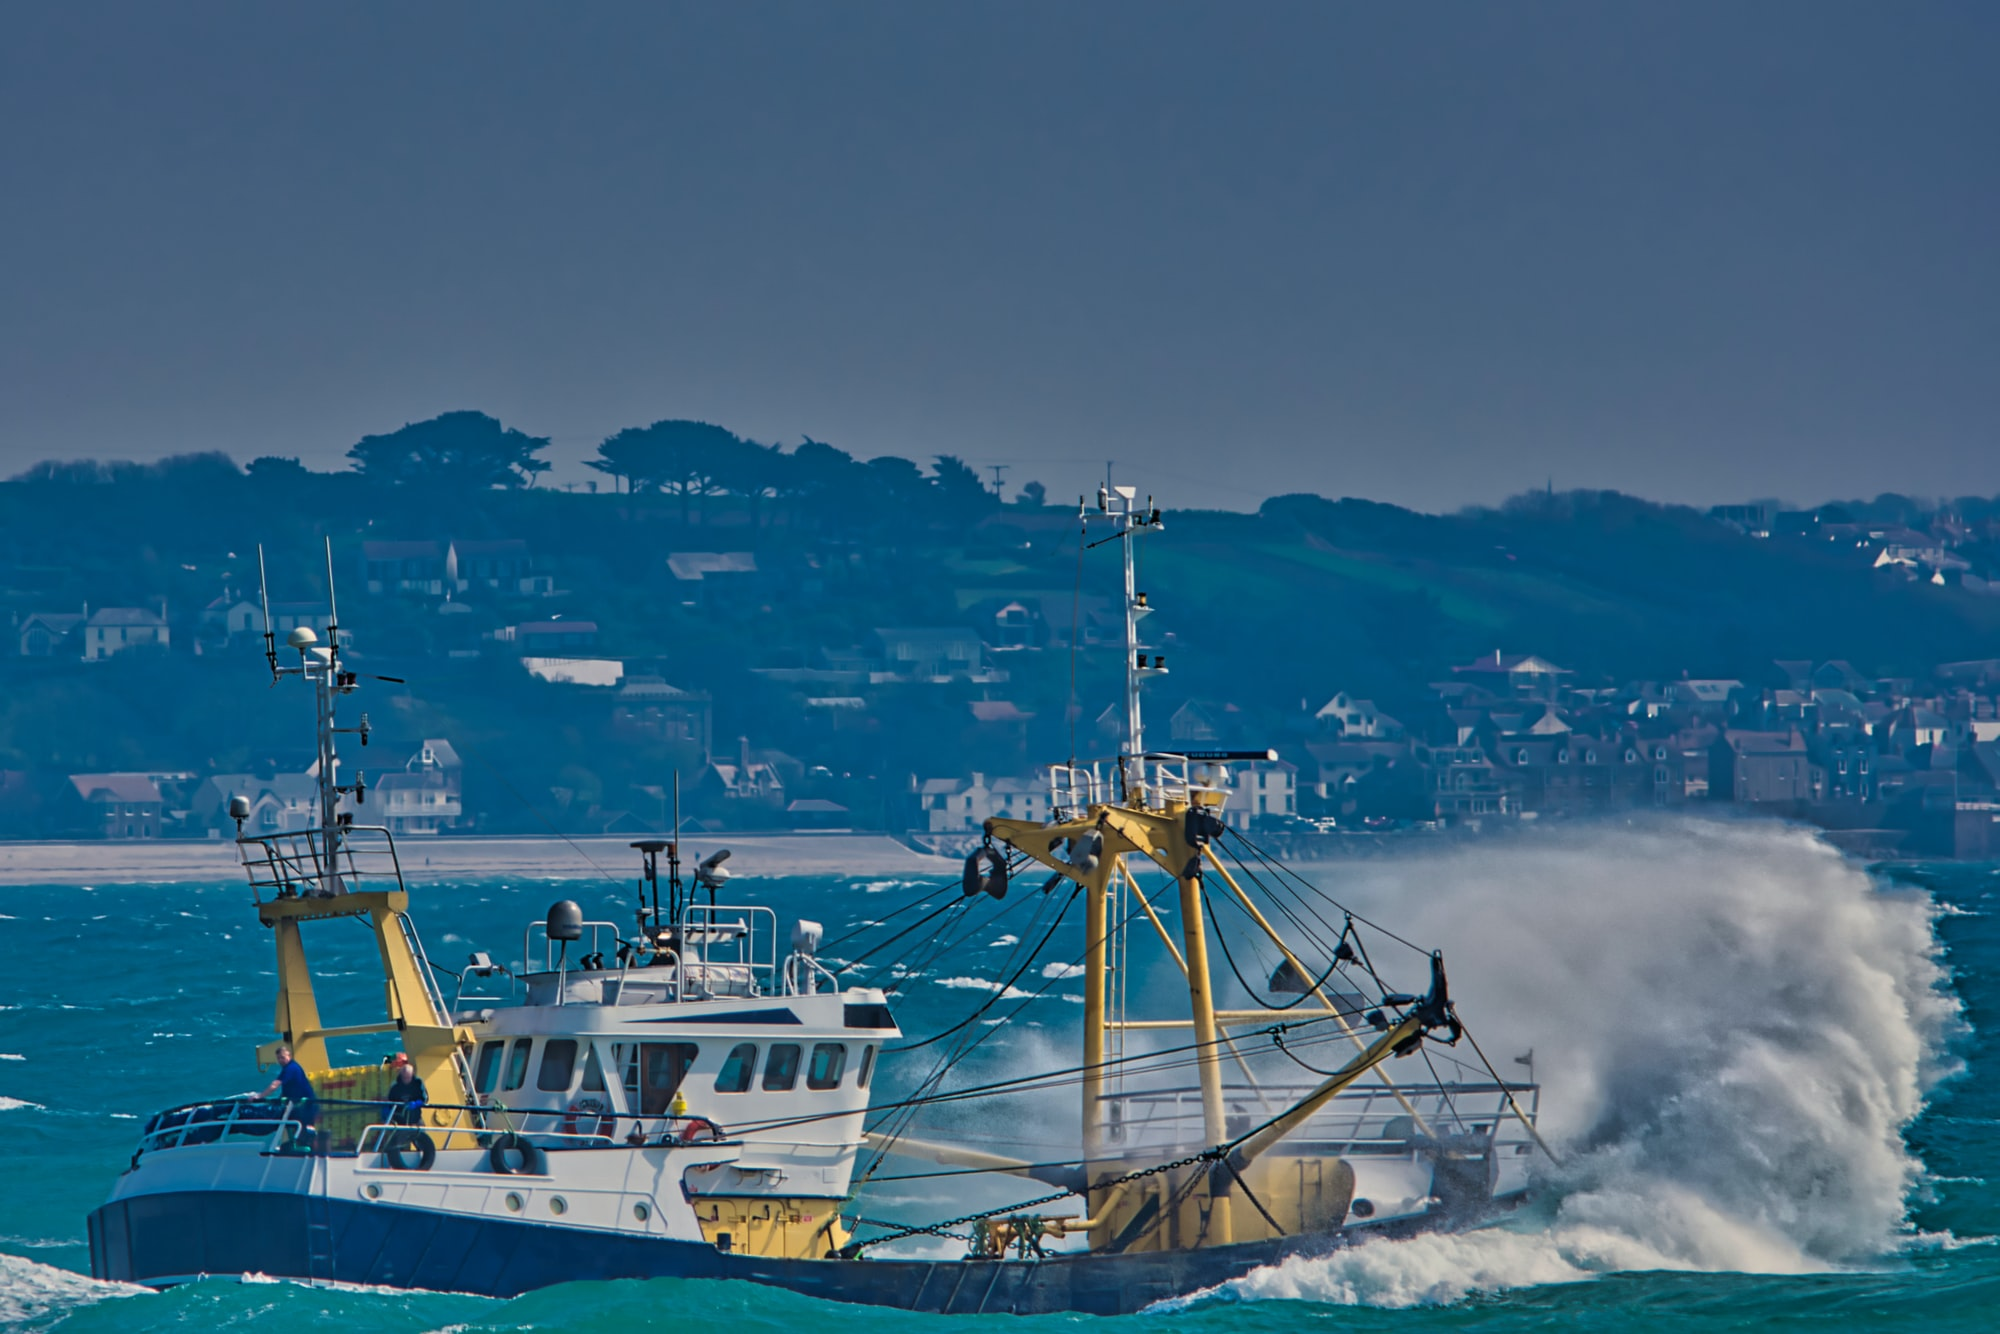 Trawler going to sea in rough weather.